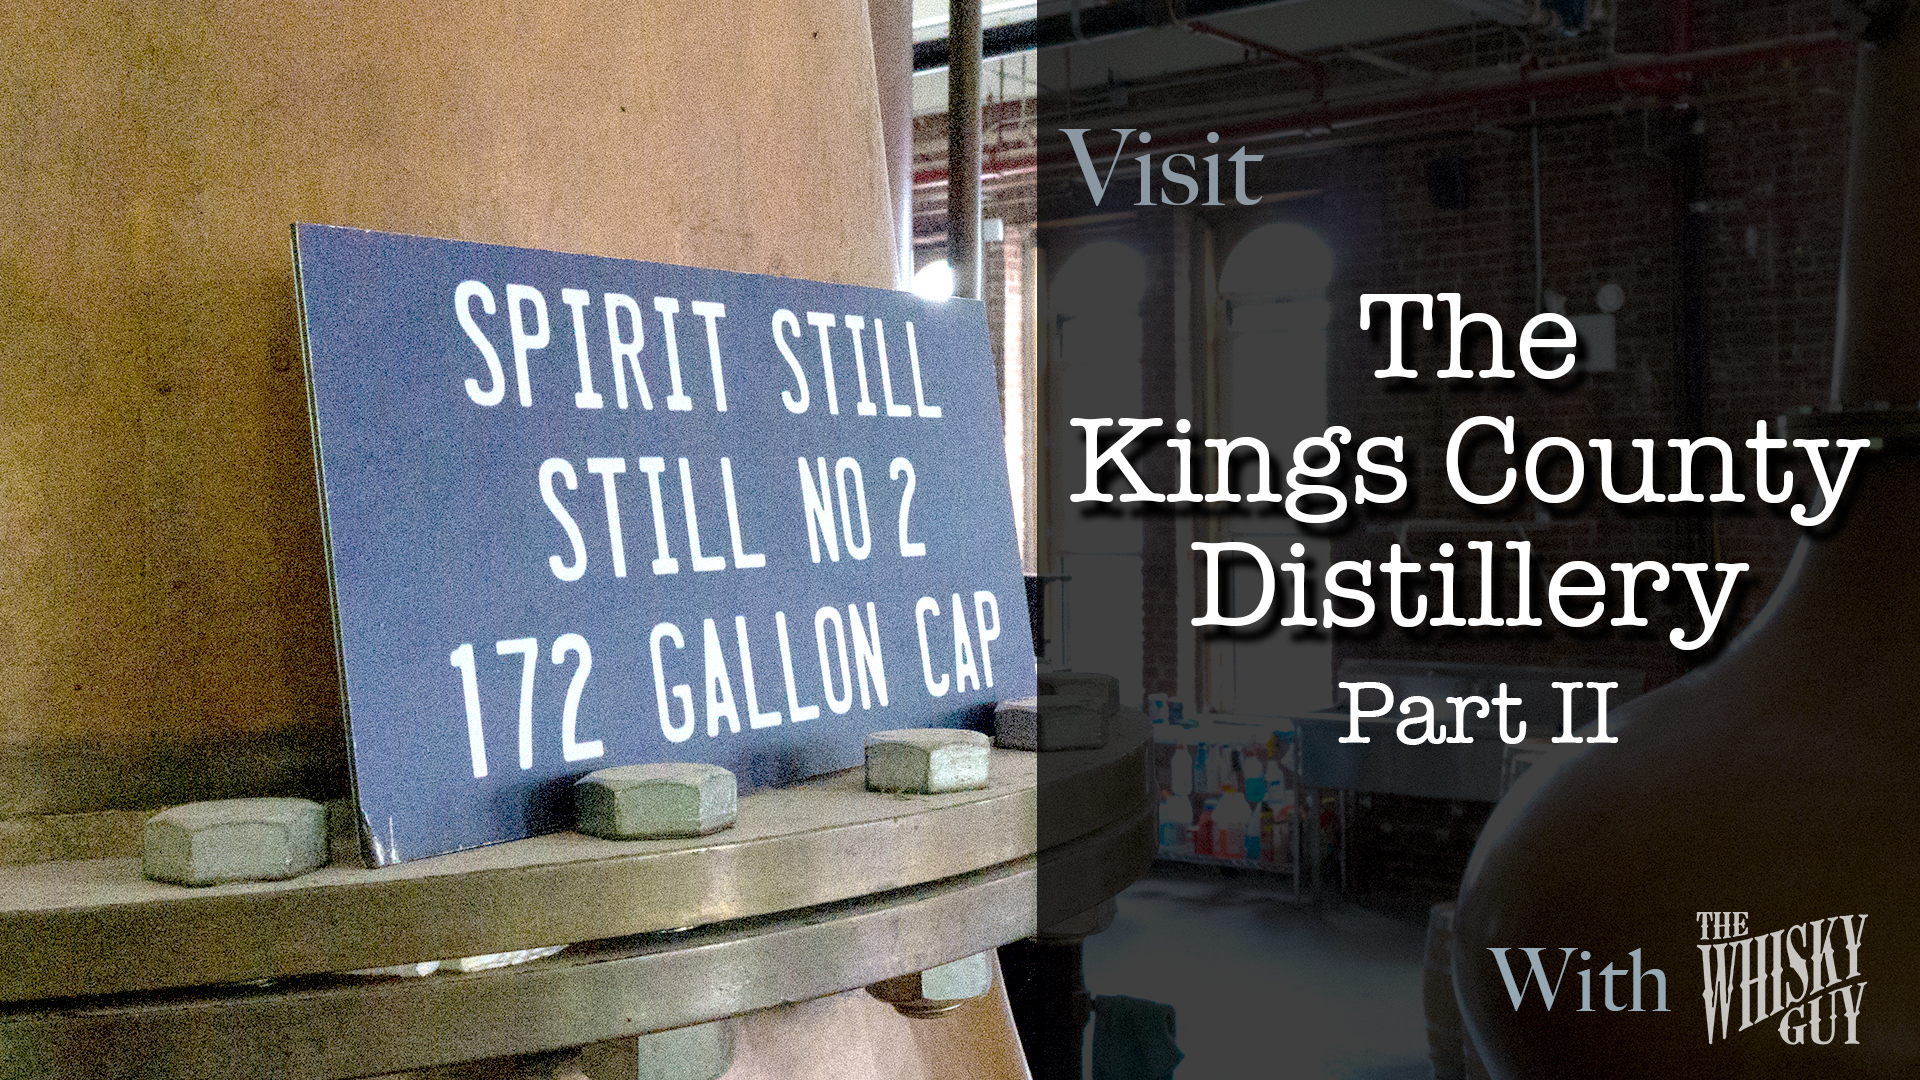 How is Kings County Whiskey made? Follow along as The Whisky Guy tours The Kings County Distillery in Brooklyn, NY and hear directly from Colin Spoelman, Co-Founder and Master Distiller. Part 2 of 3. Find more at TheWhiskyGuy.com. All original content © Ari Shapiro - TheWhiskyGuy.com